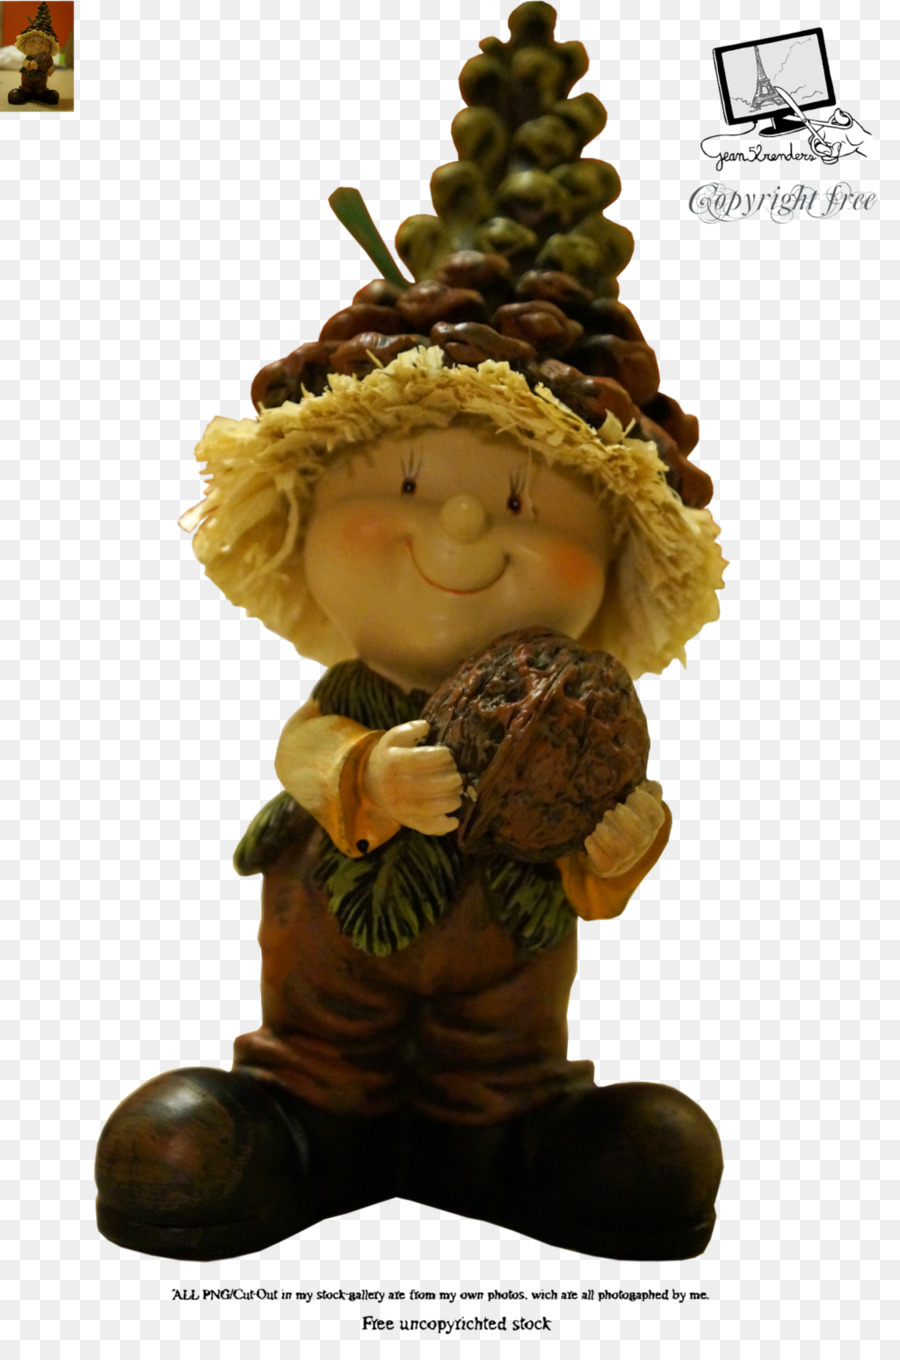 Garden gnome - Gnome png download - 1024*1538 - Free Transparent ...